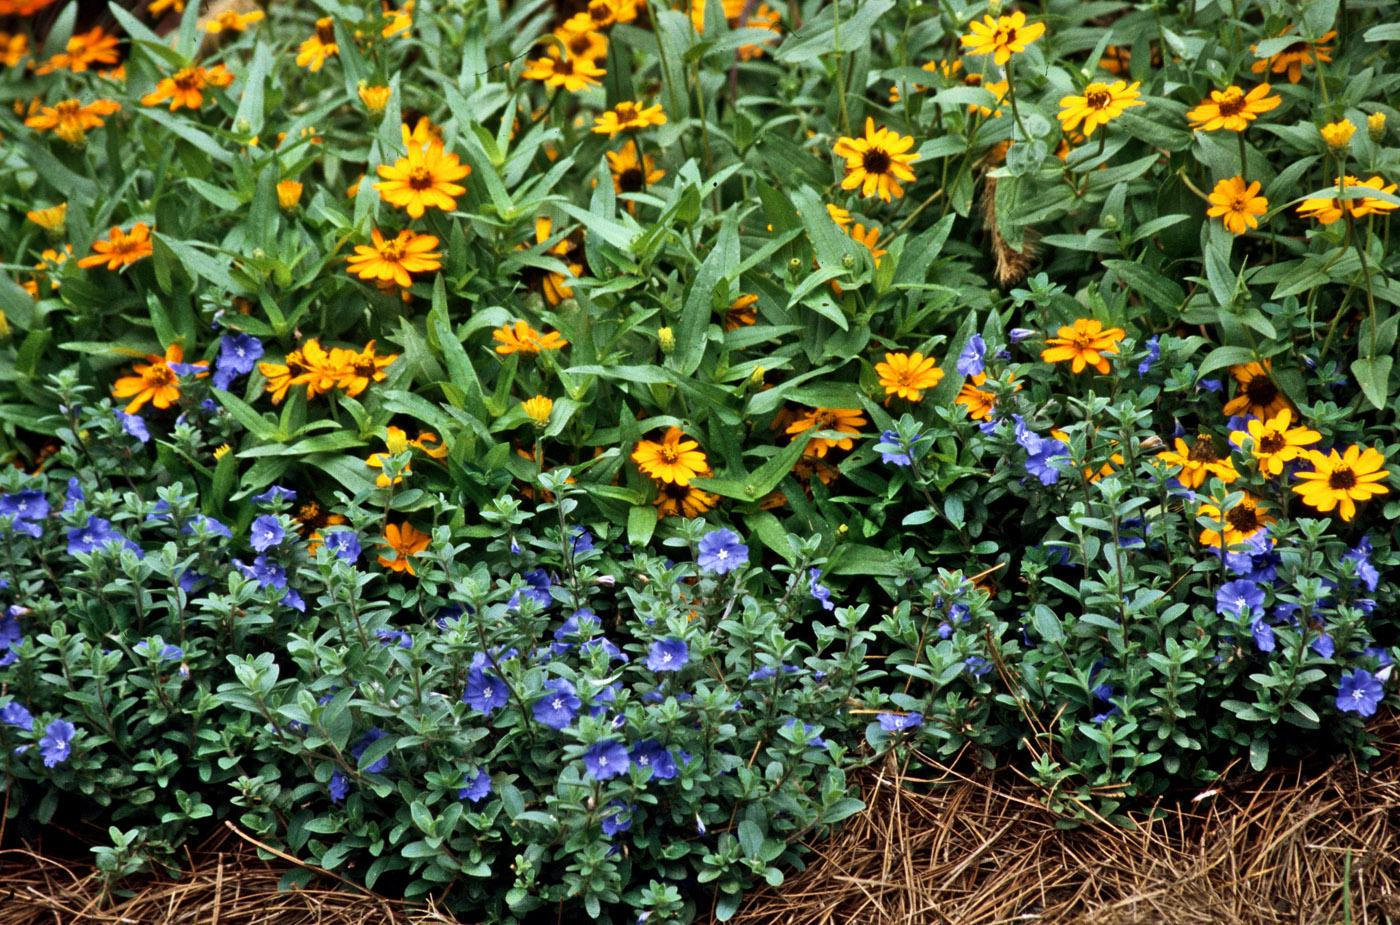 Blue Daze, a selection of Evolvulus glomeratus, can provide blue color throughout the hottest summer until the first frost. They work well planted toward the front of the border in this garden and used with other tough-as-nails flowers like the Profusion Fire zinnia. (Photo by Norman Winter)